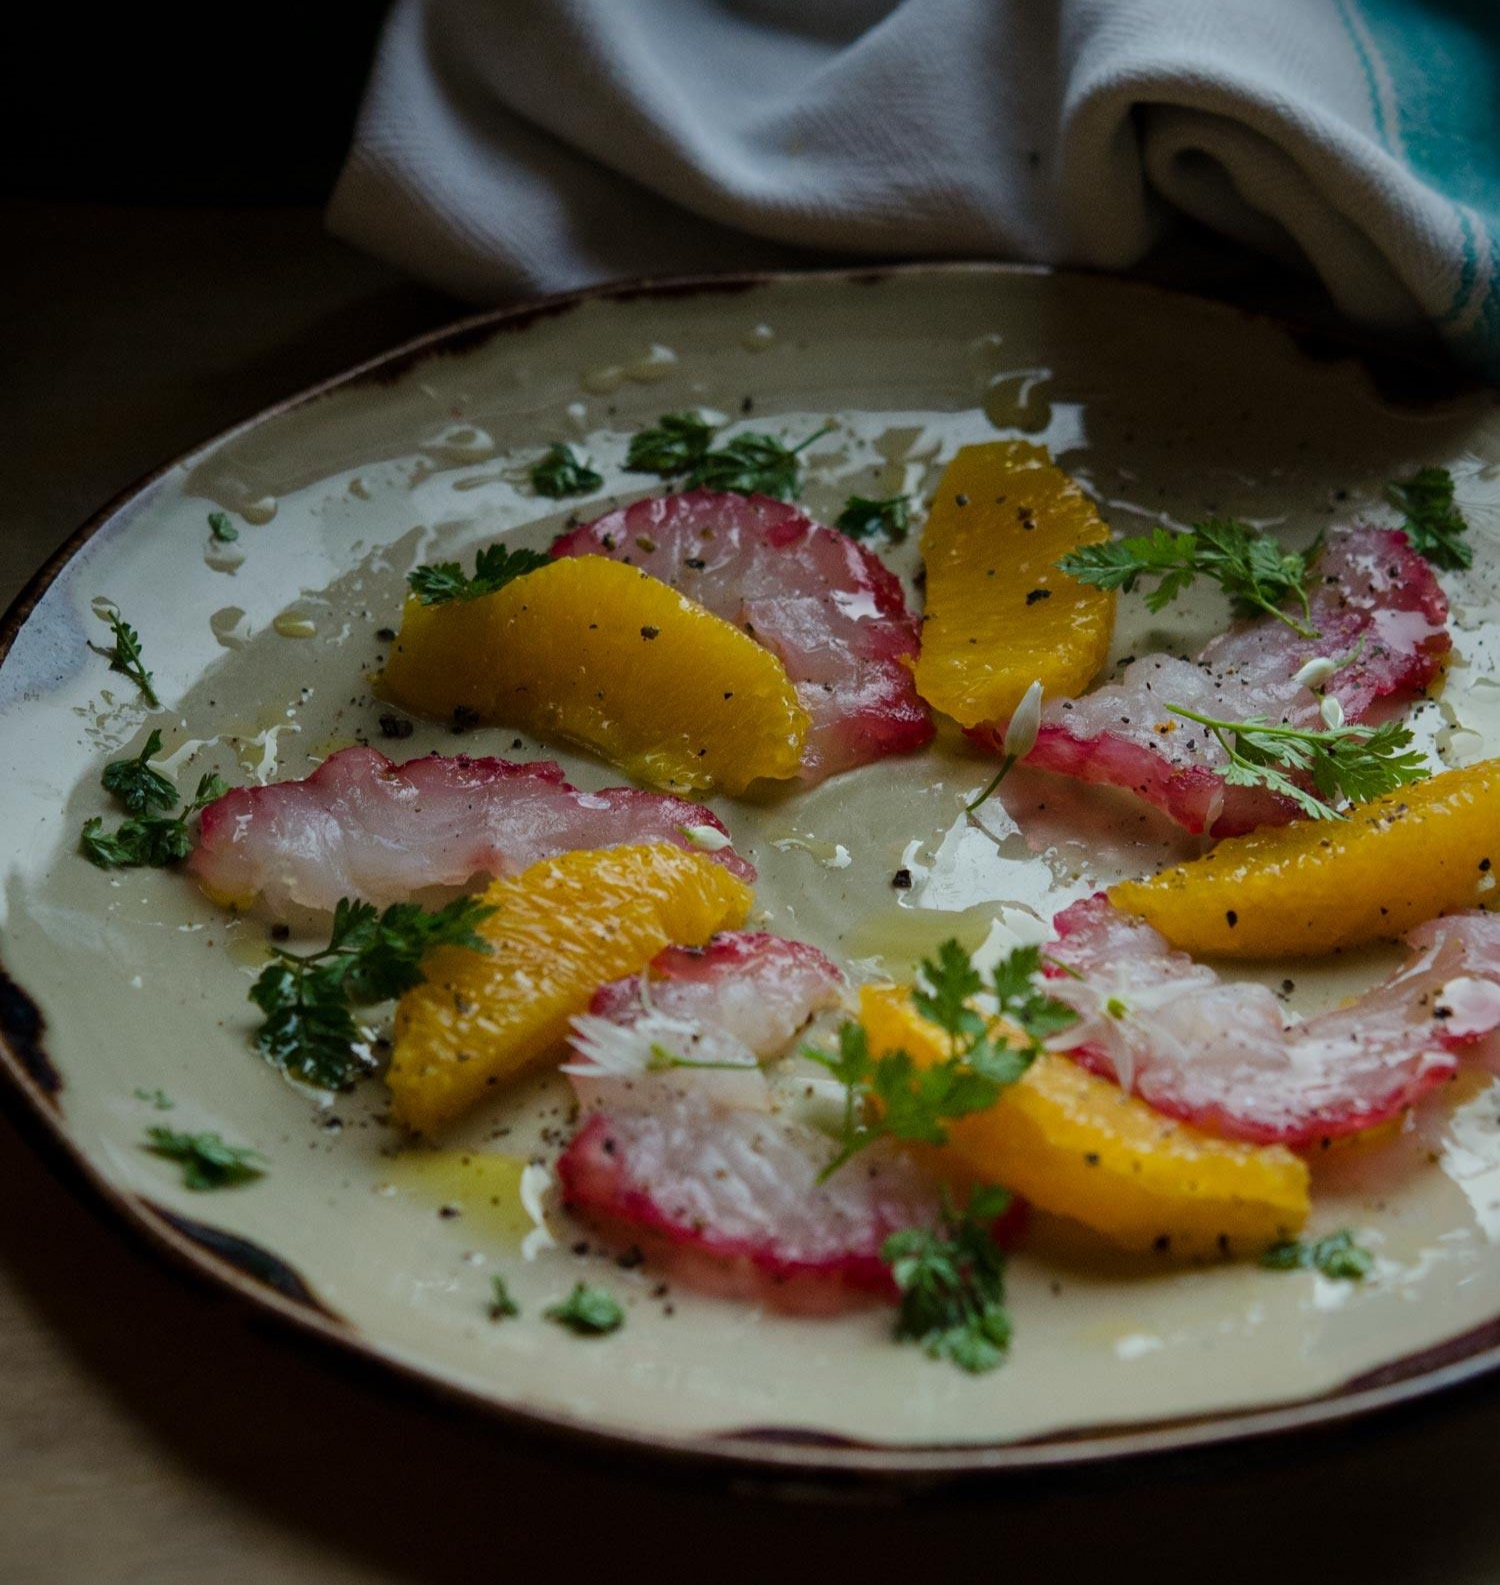 Beetroot and Orange cured pollock with orange segments and chervil